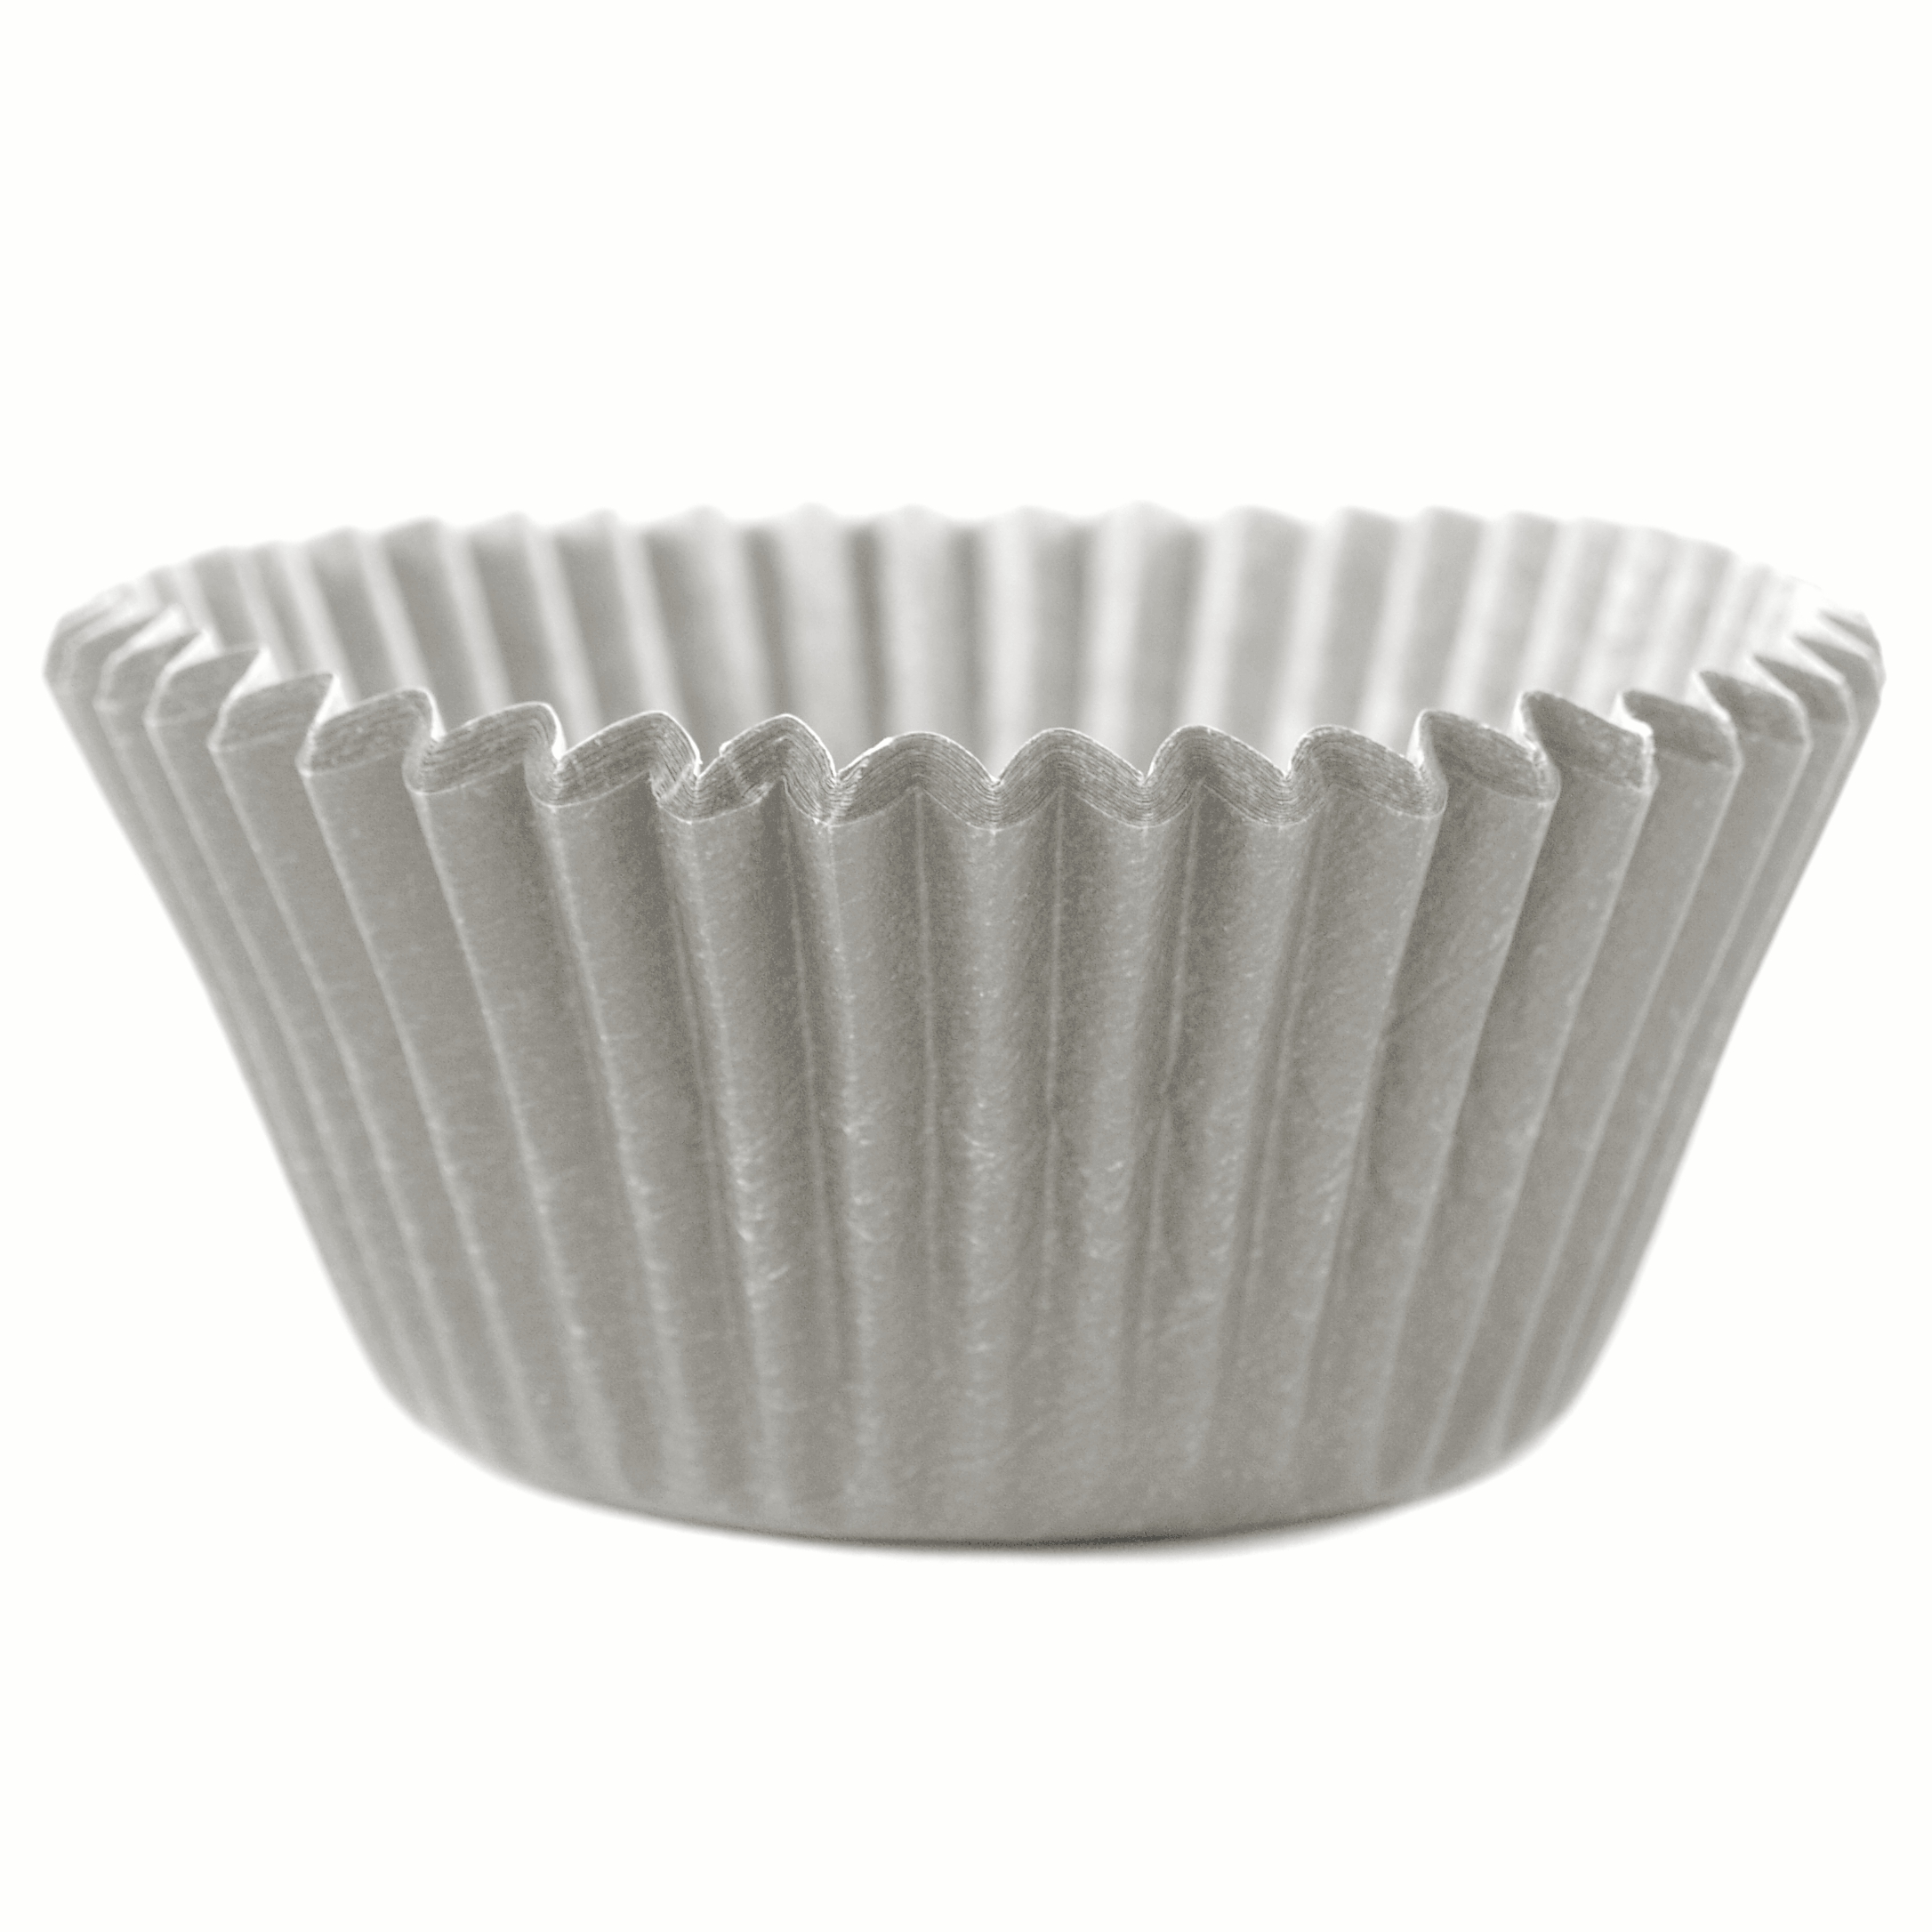 Cupcake Creations Solid Silver Baking Cup, Set of 32